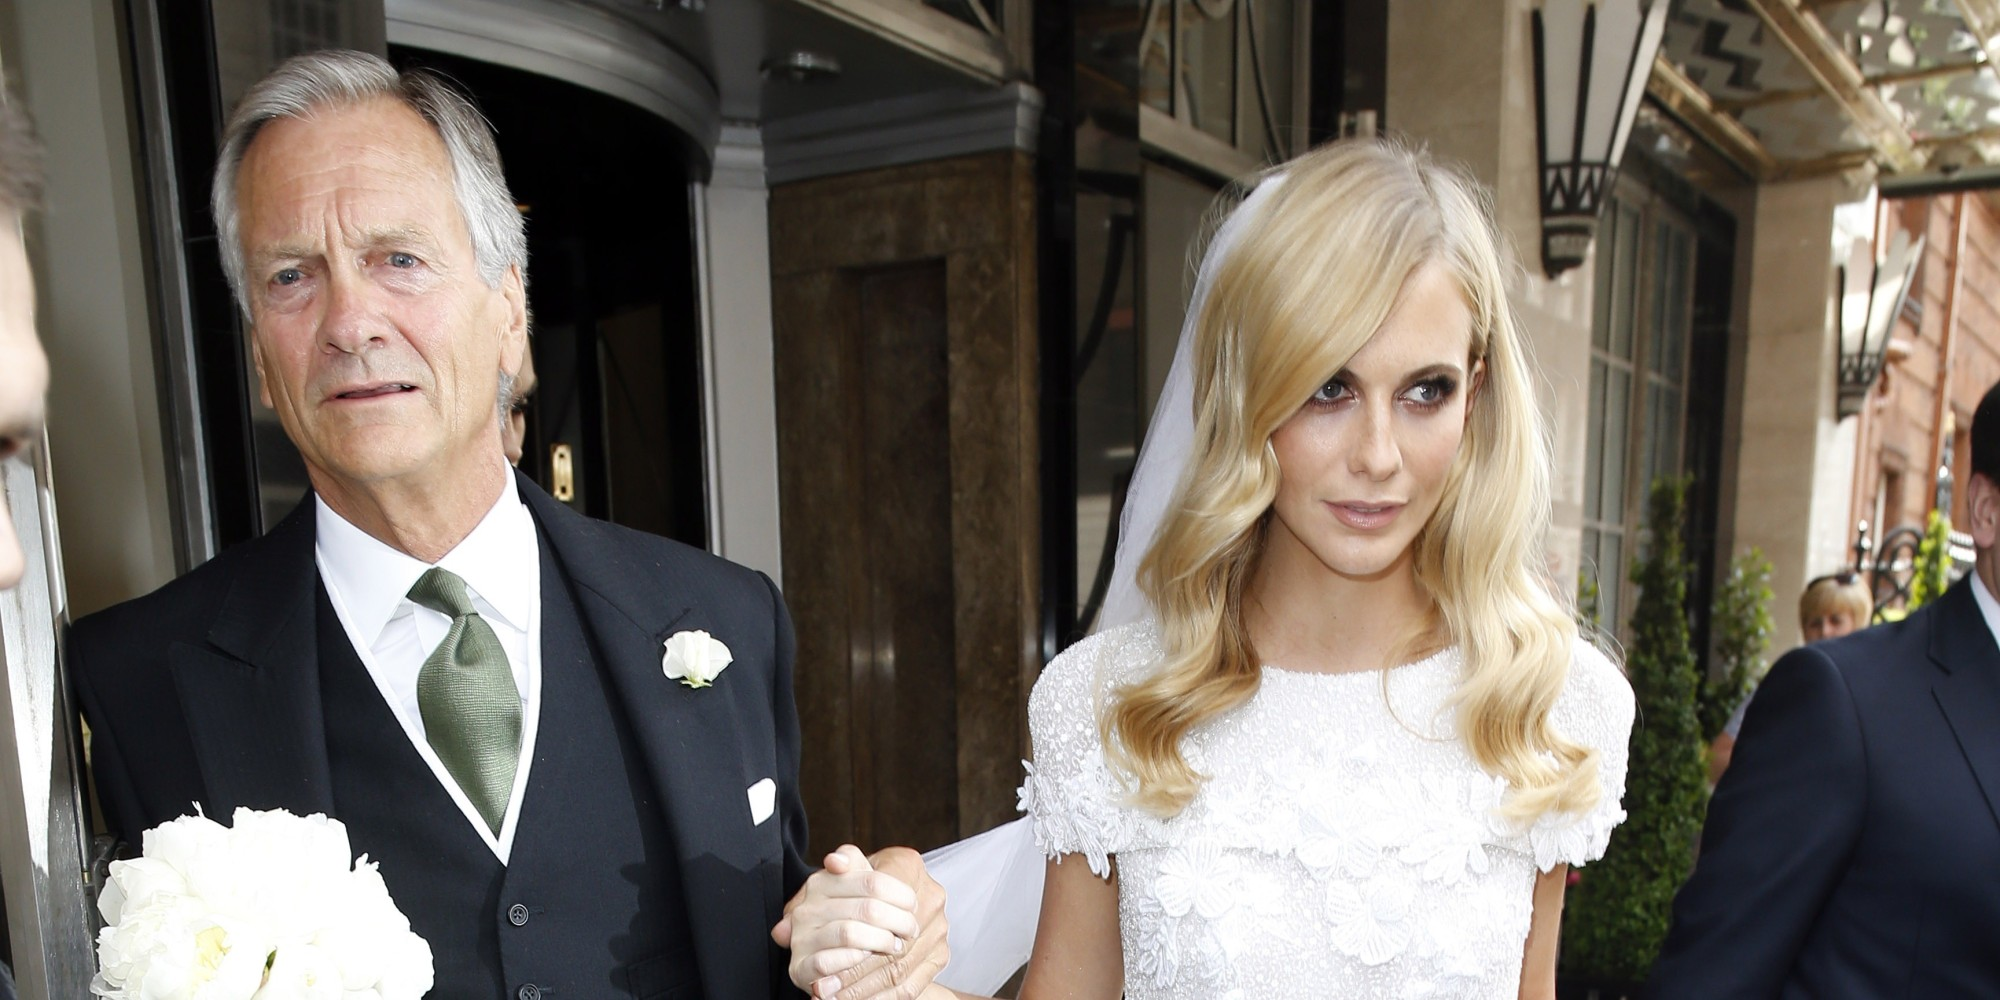 The dress is chanel - Poppy Delevingne S Wedding Dress Is Chanel Couture Bridal Perfection Huffpost